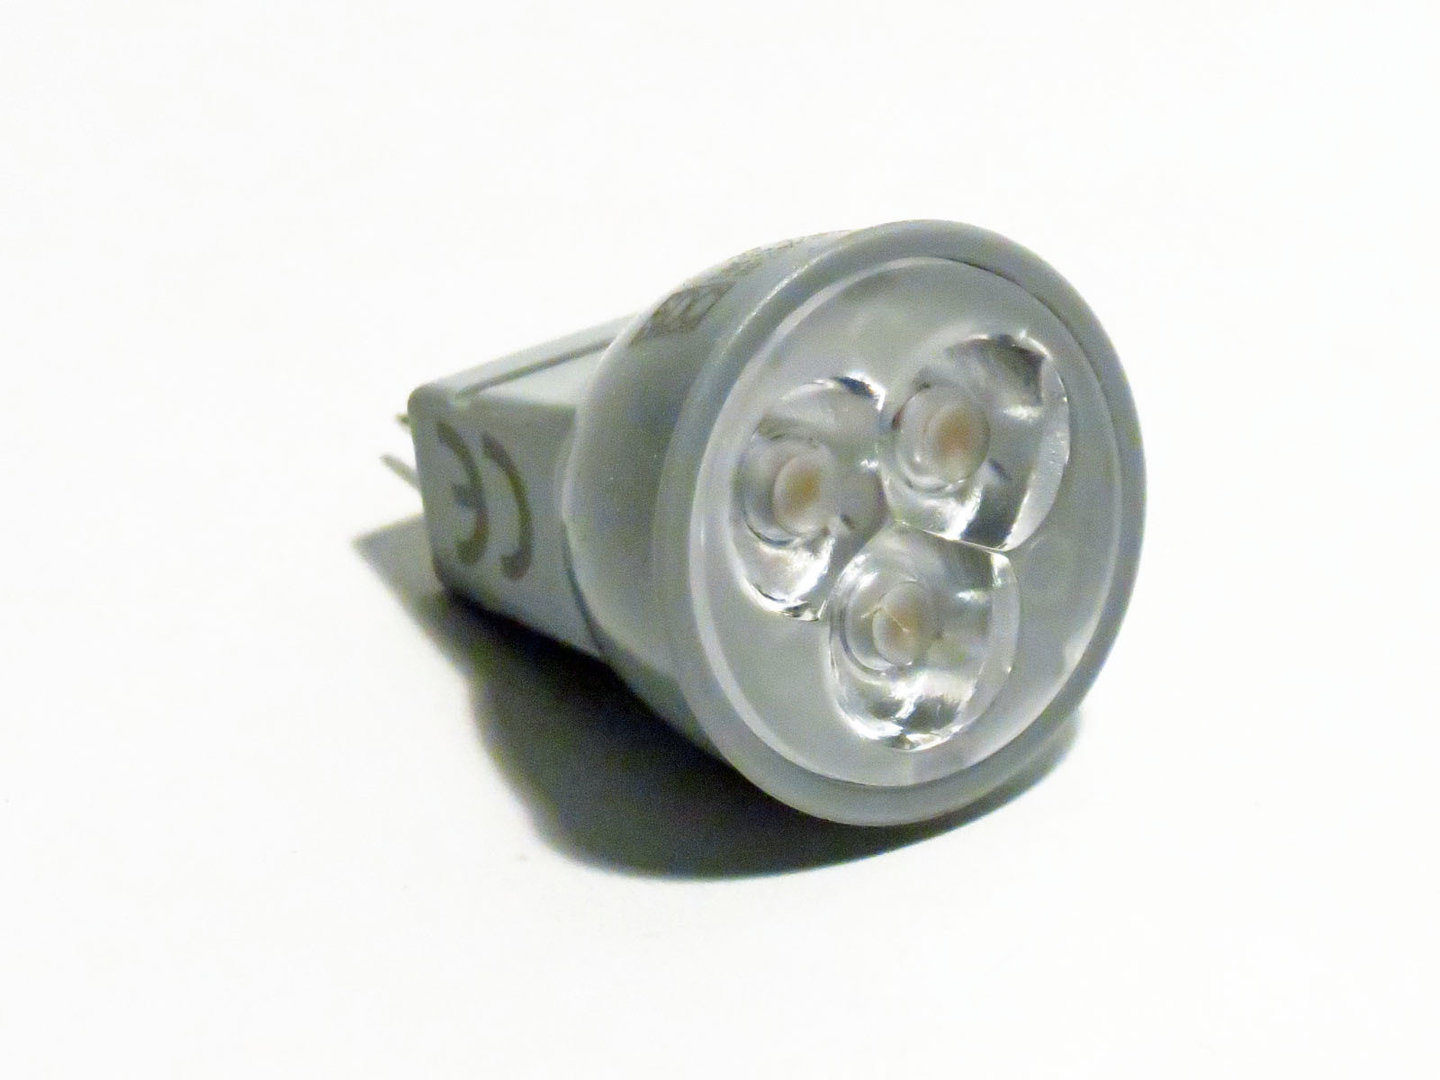 MR8 GU4 Power LED 1W 10-30V 30° warmweiß